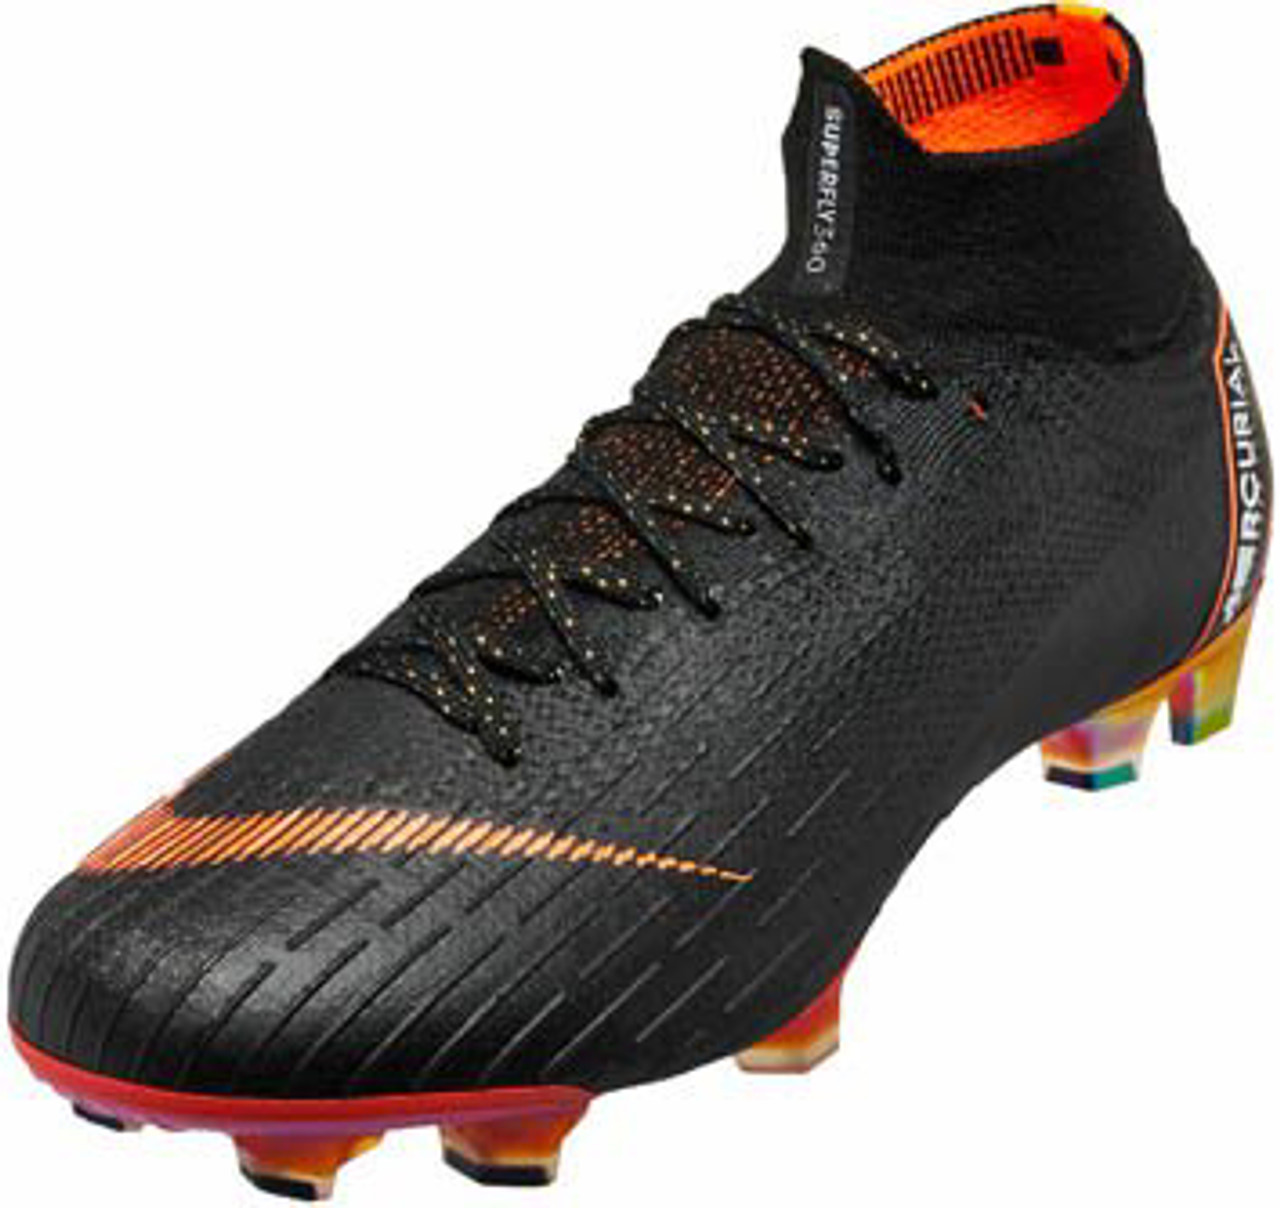 brand new f2f16 7d18d NIKE SUPERFLY VI Elite FG Soccer Cleat Black/Total Orange